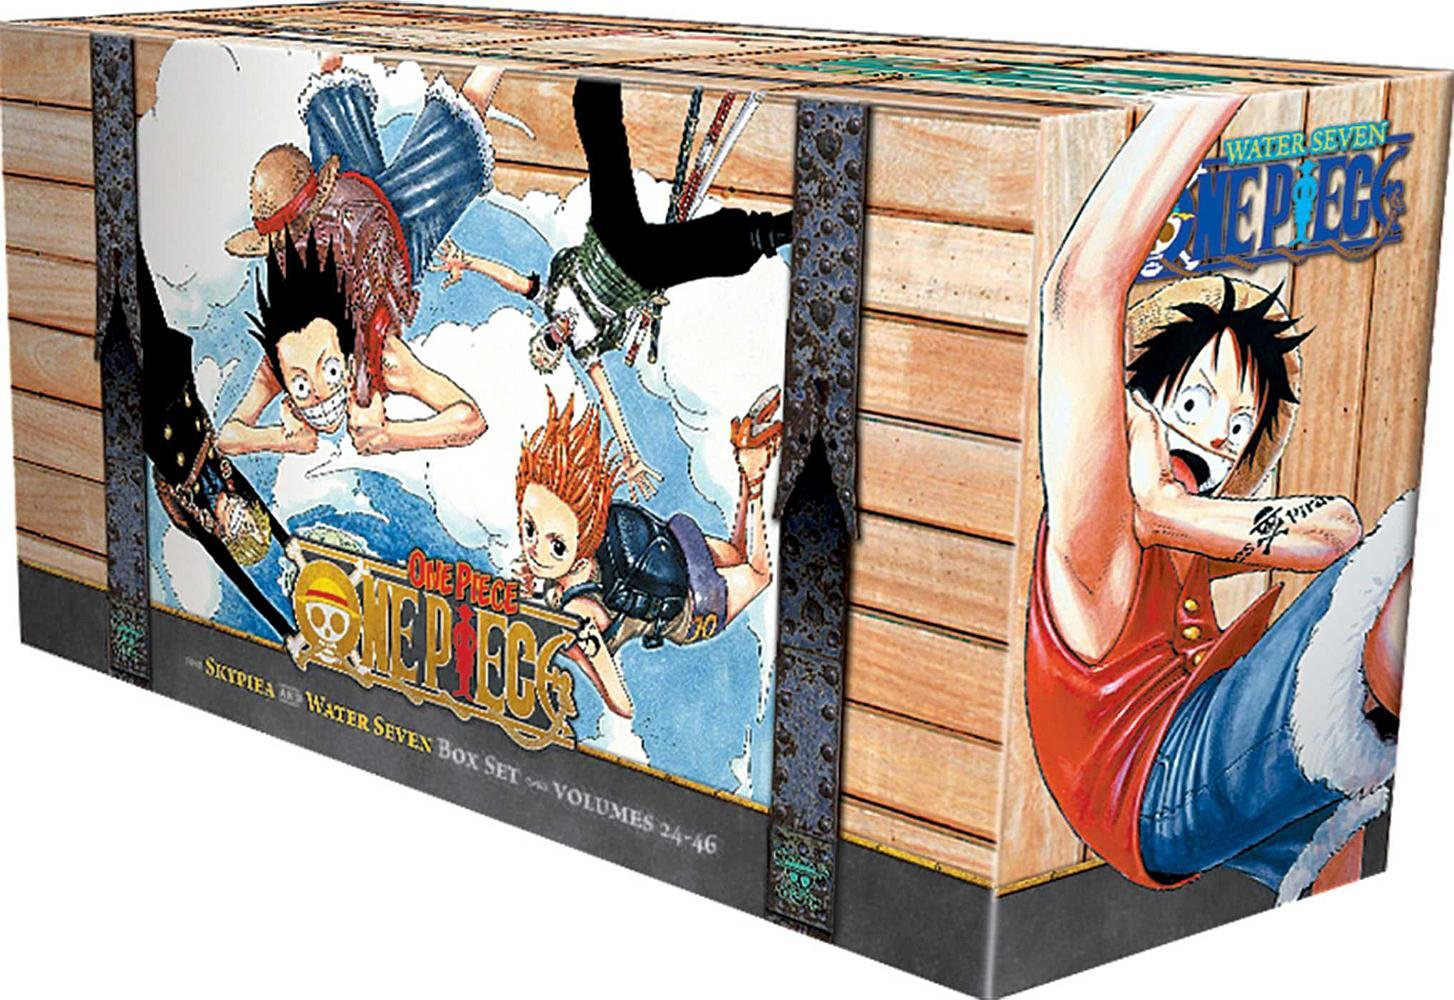 Skypiea and Water Seven, Volumes 24-26 (Box Set)